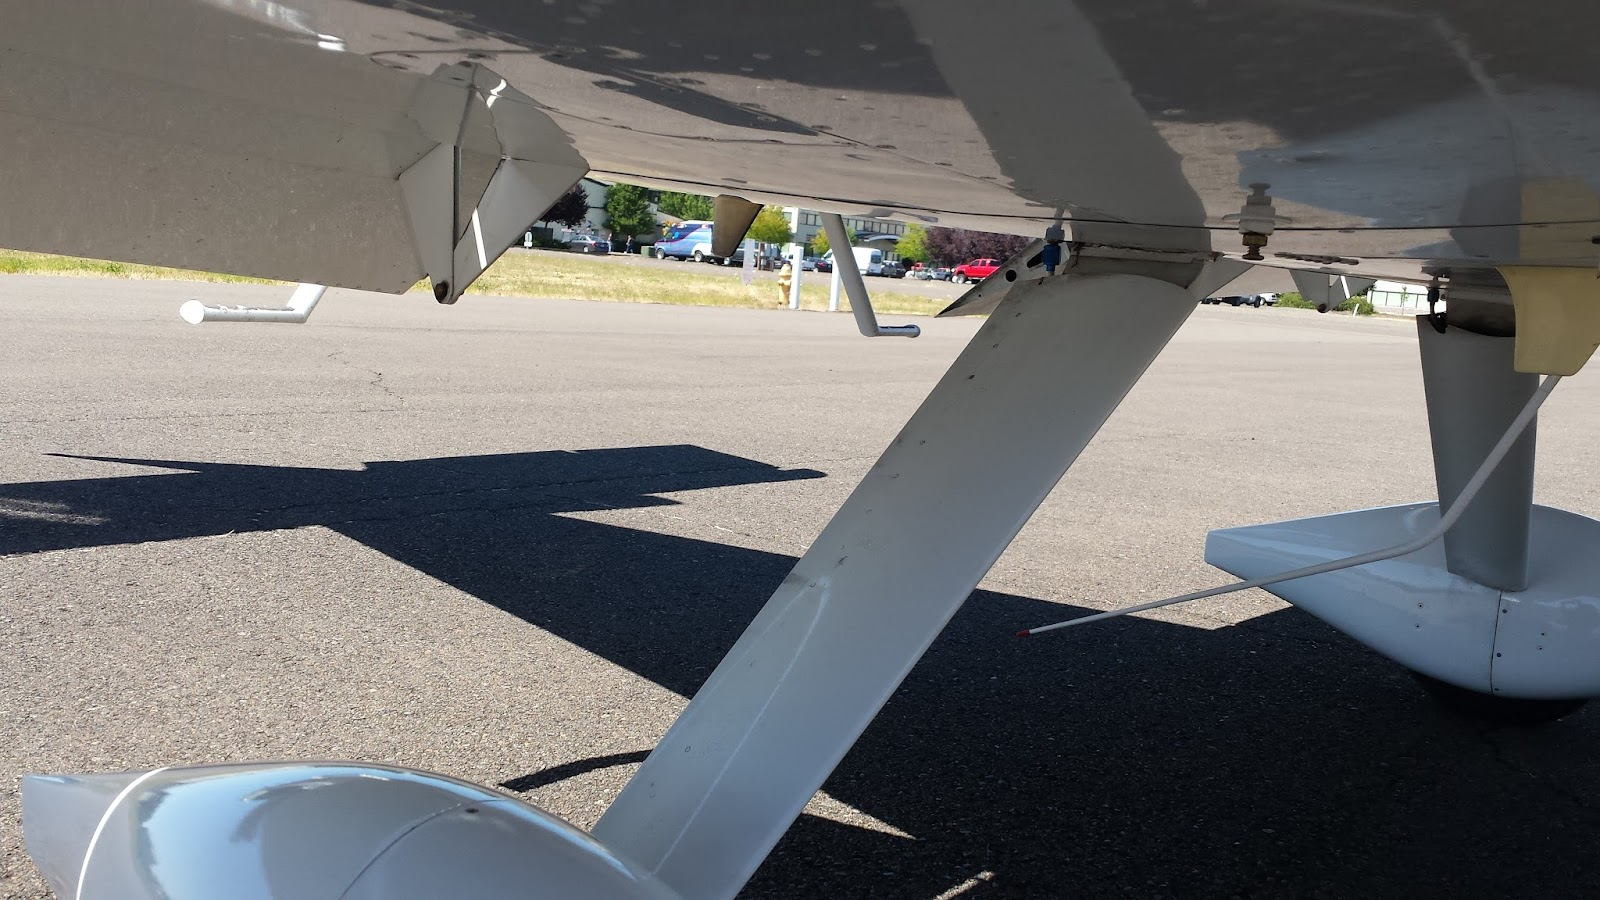 Ride back view of gear legs and right flap underside